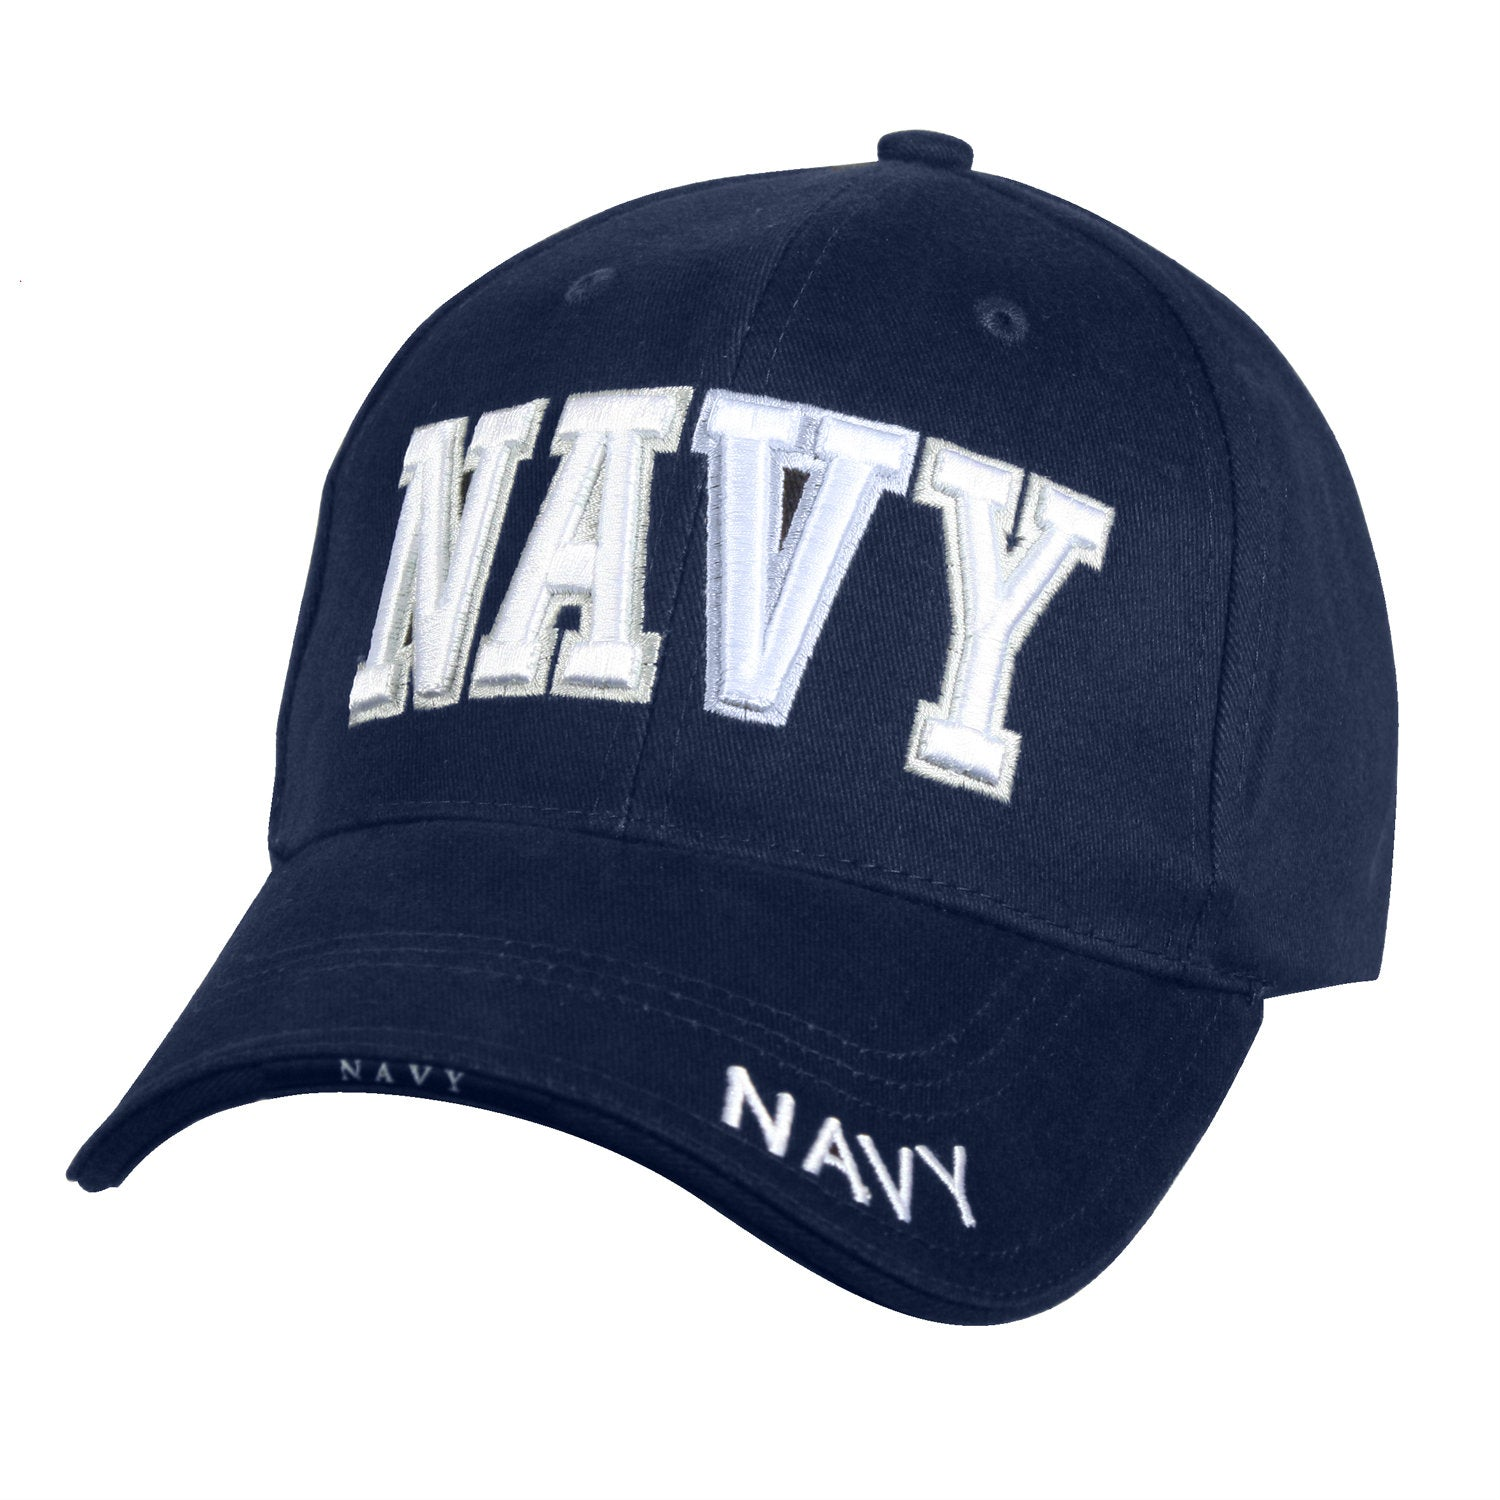 Navy Text Hat Navy